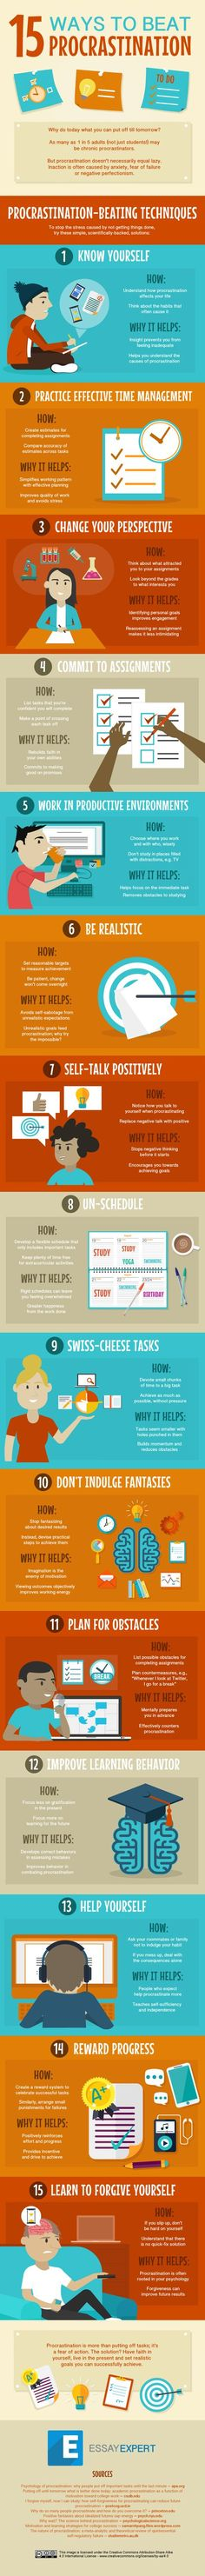 Gerald likes: Practical tips on avoiding procrastination. Wondering about the idea of small punishments for not getting things done! :: 15 Ways to Overcome Procrastination and Get Stuff Done (Infographic) E Learning, Learning Quotes, Blended Learning, Lerntyp Test, How To Stop Procrastinating, Study Skills, College Hacks, College Life, Ra College